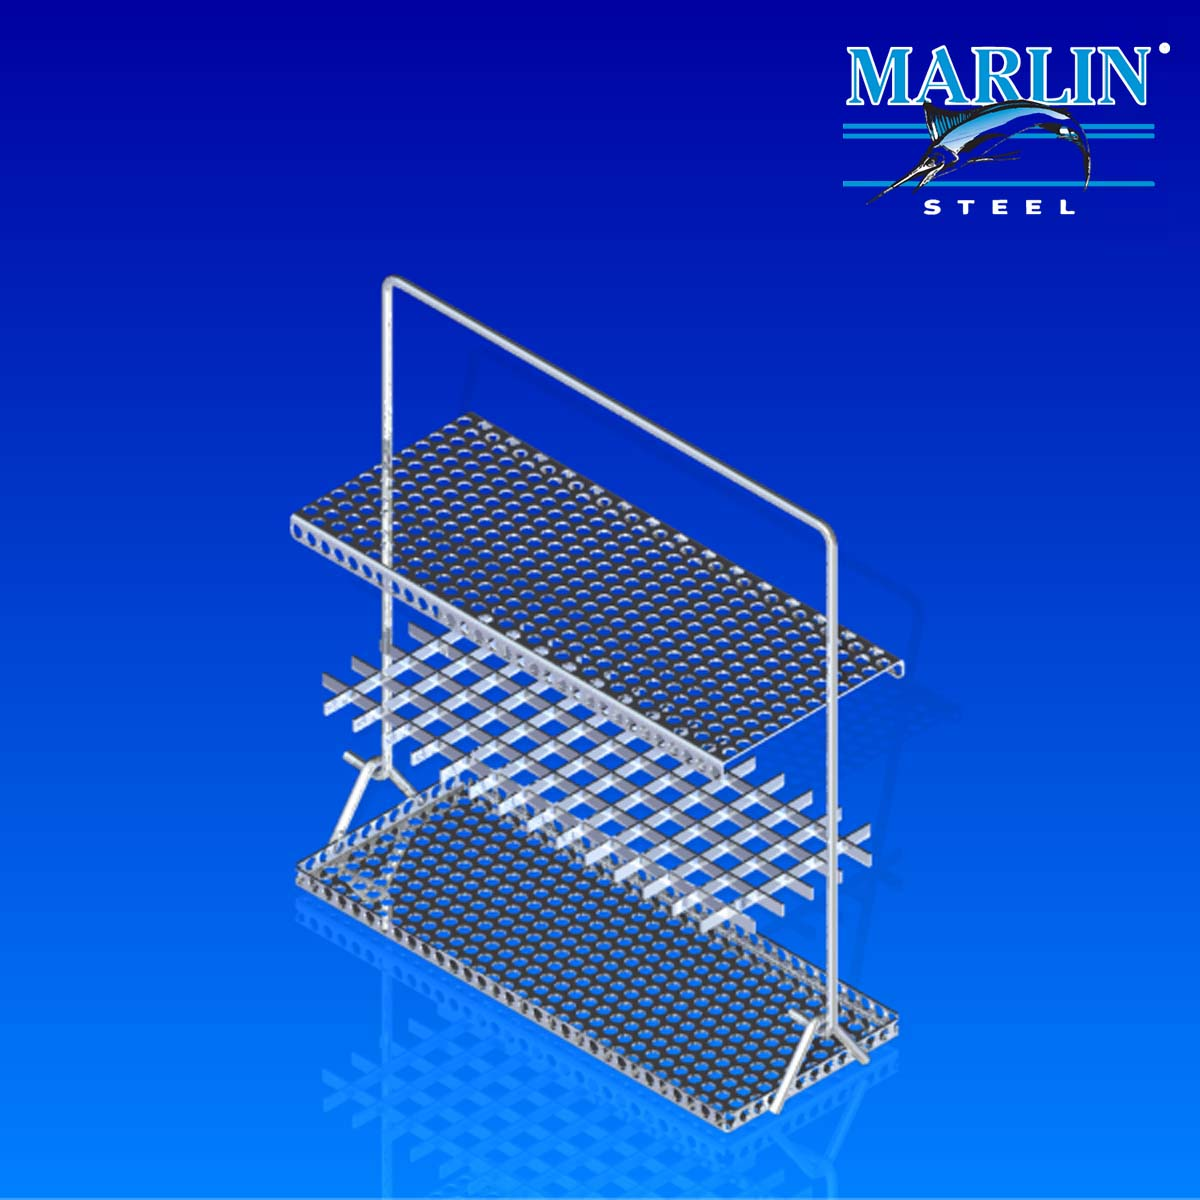 Marlin Steel Wire Baskets with Handles and Dividers 701001